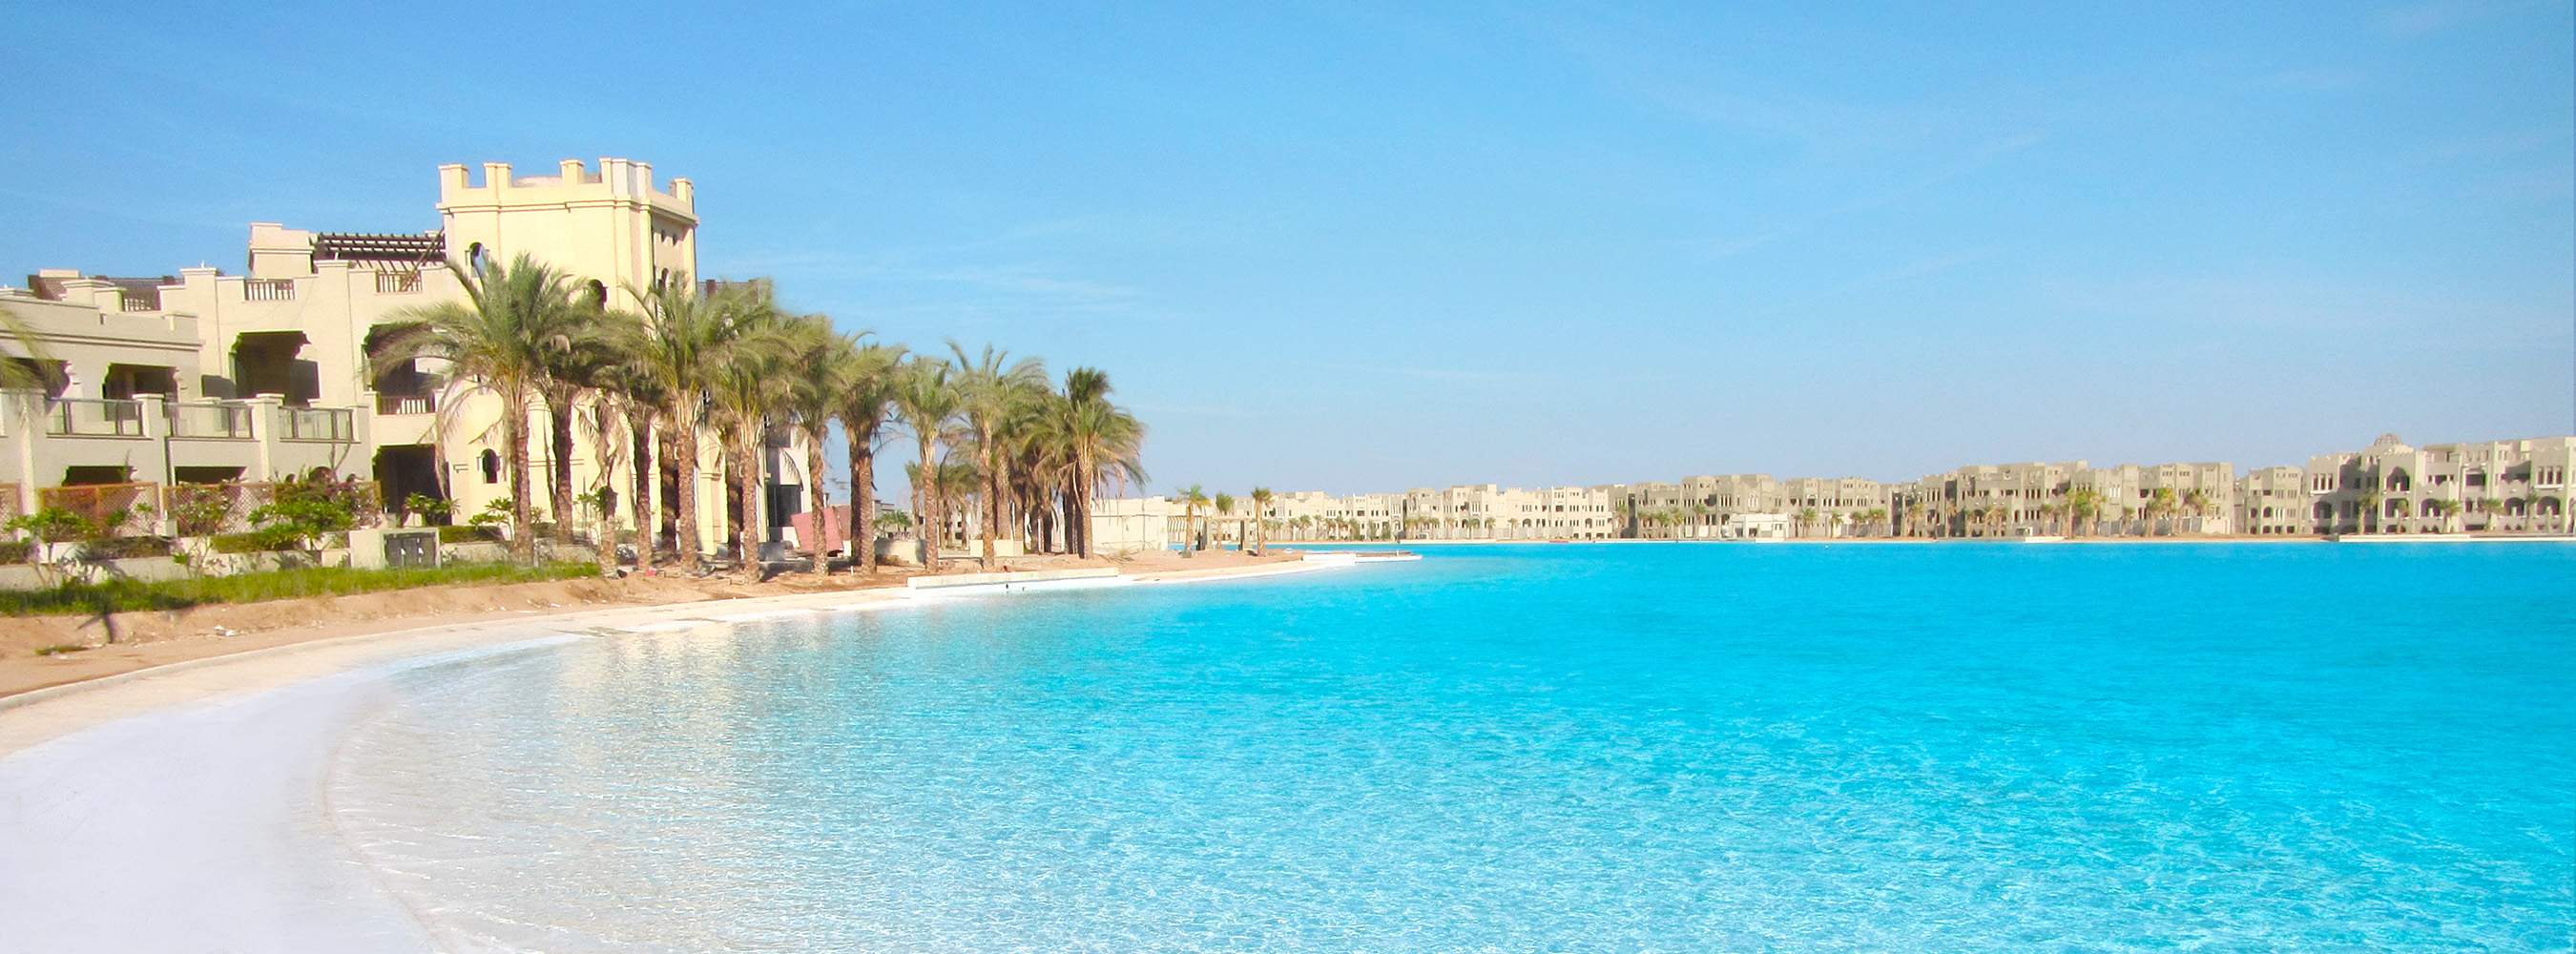 Crystal lagoons awarded second guinness world record for - North east hotels with swimming pool ...